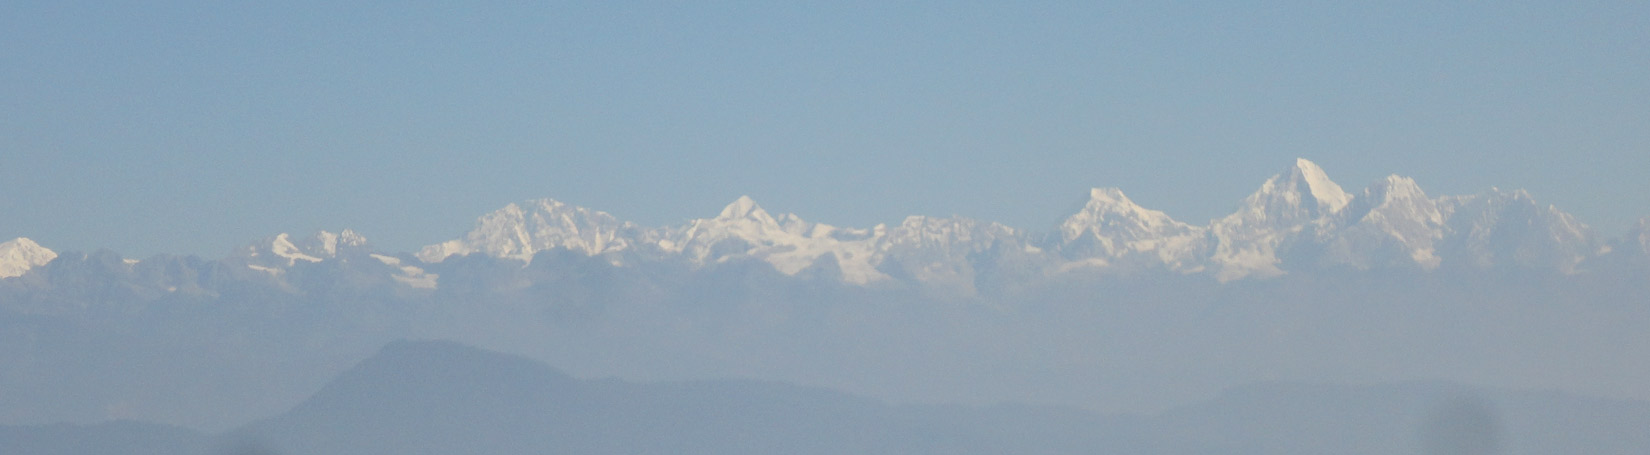 Langtang Range, View From Champadevi Hill